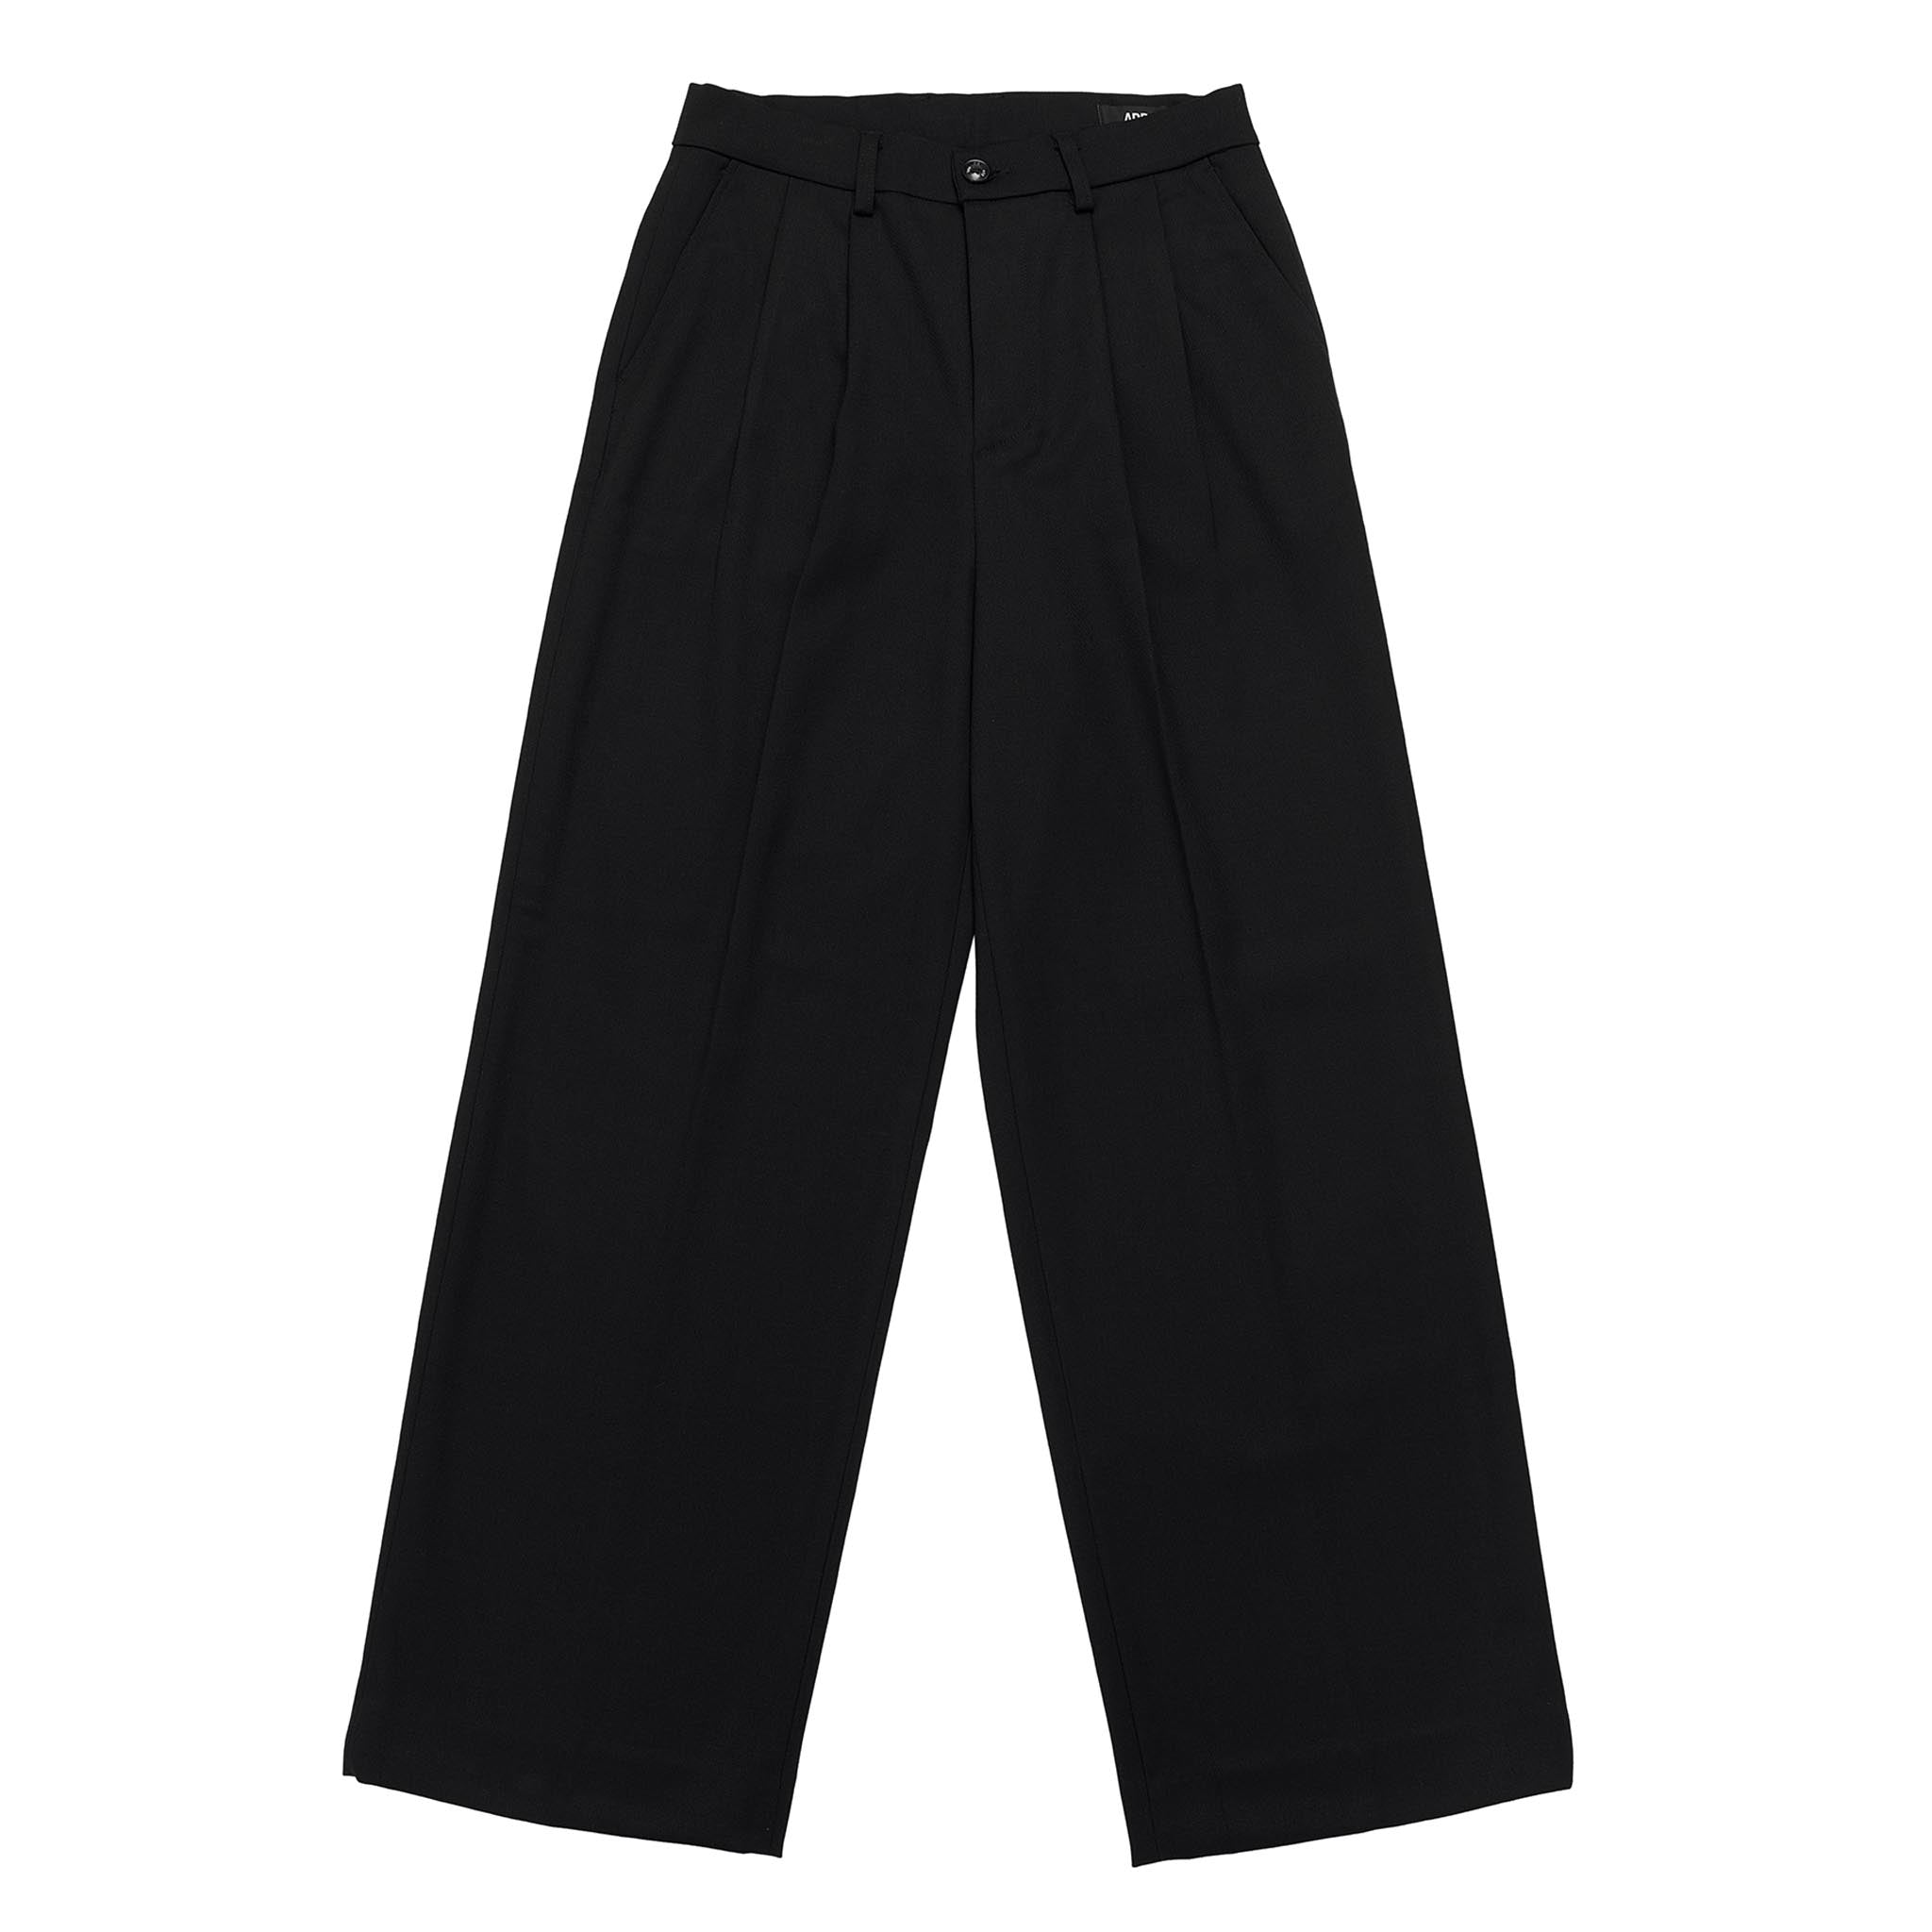 ADD Extra Superwide Slacks Black